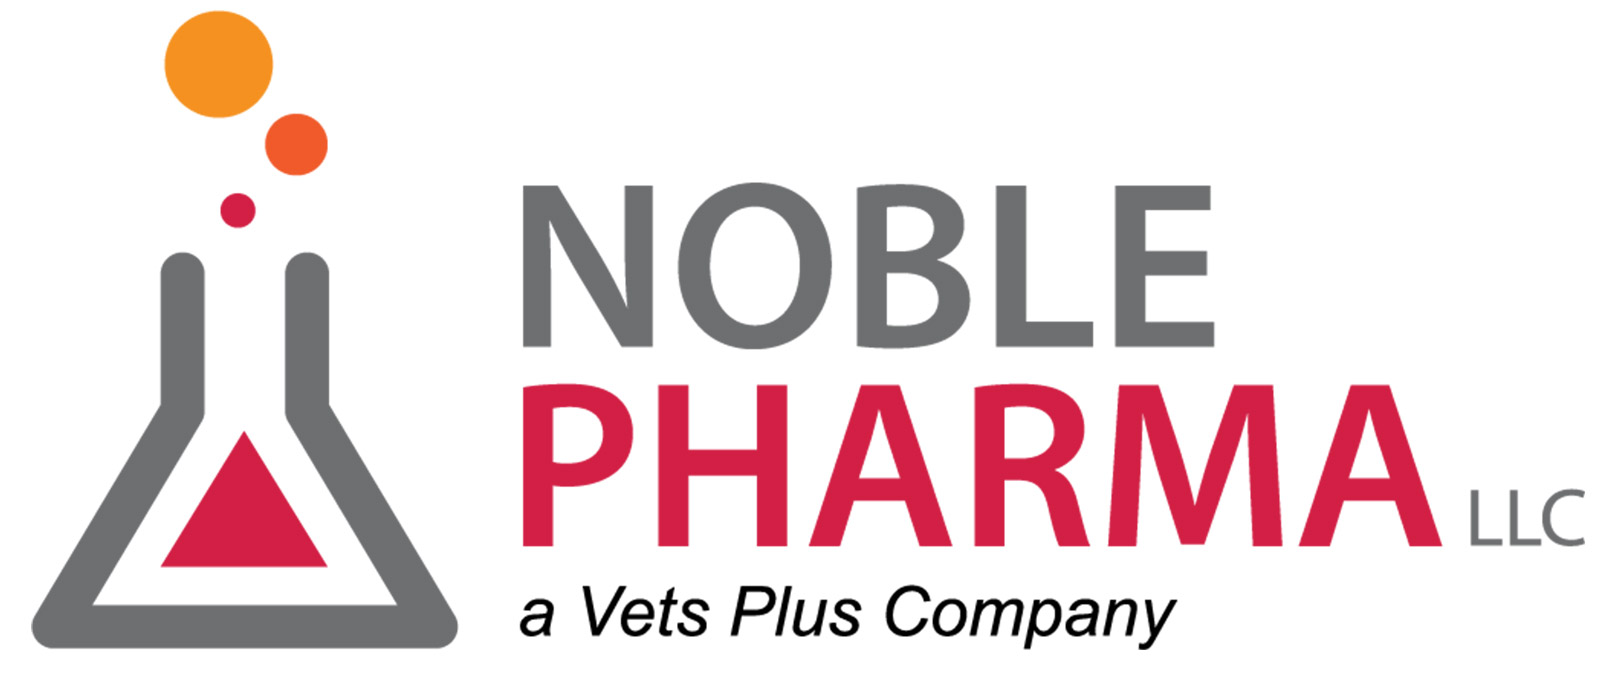 noble-pharma-logo